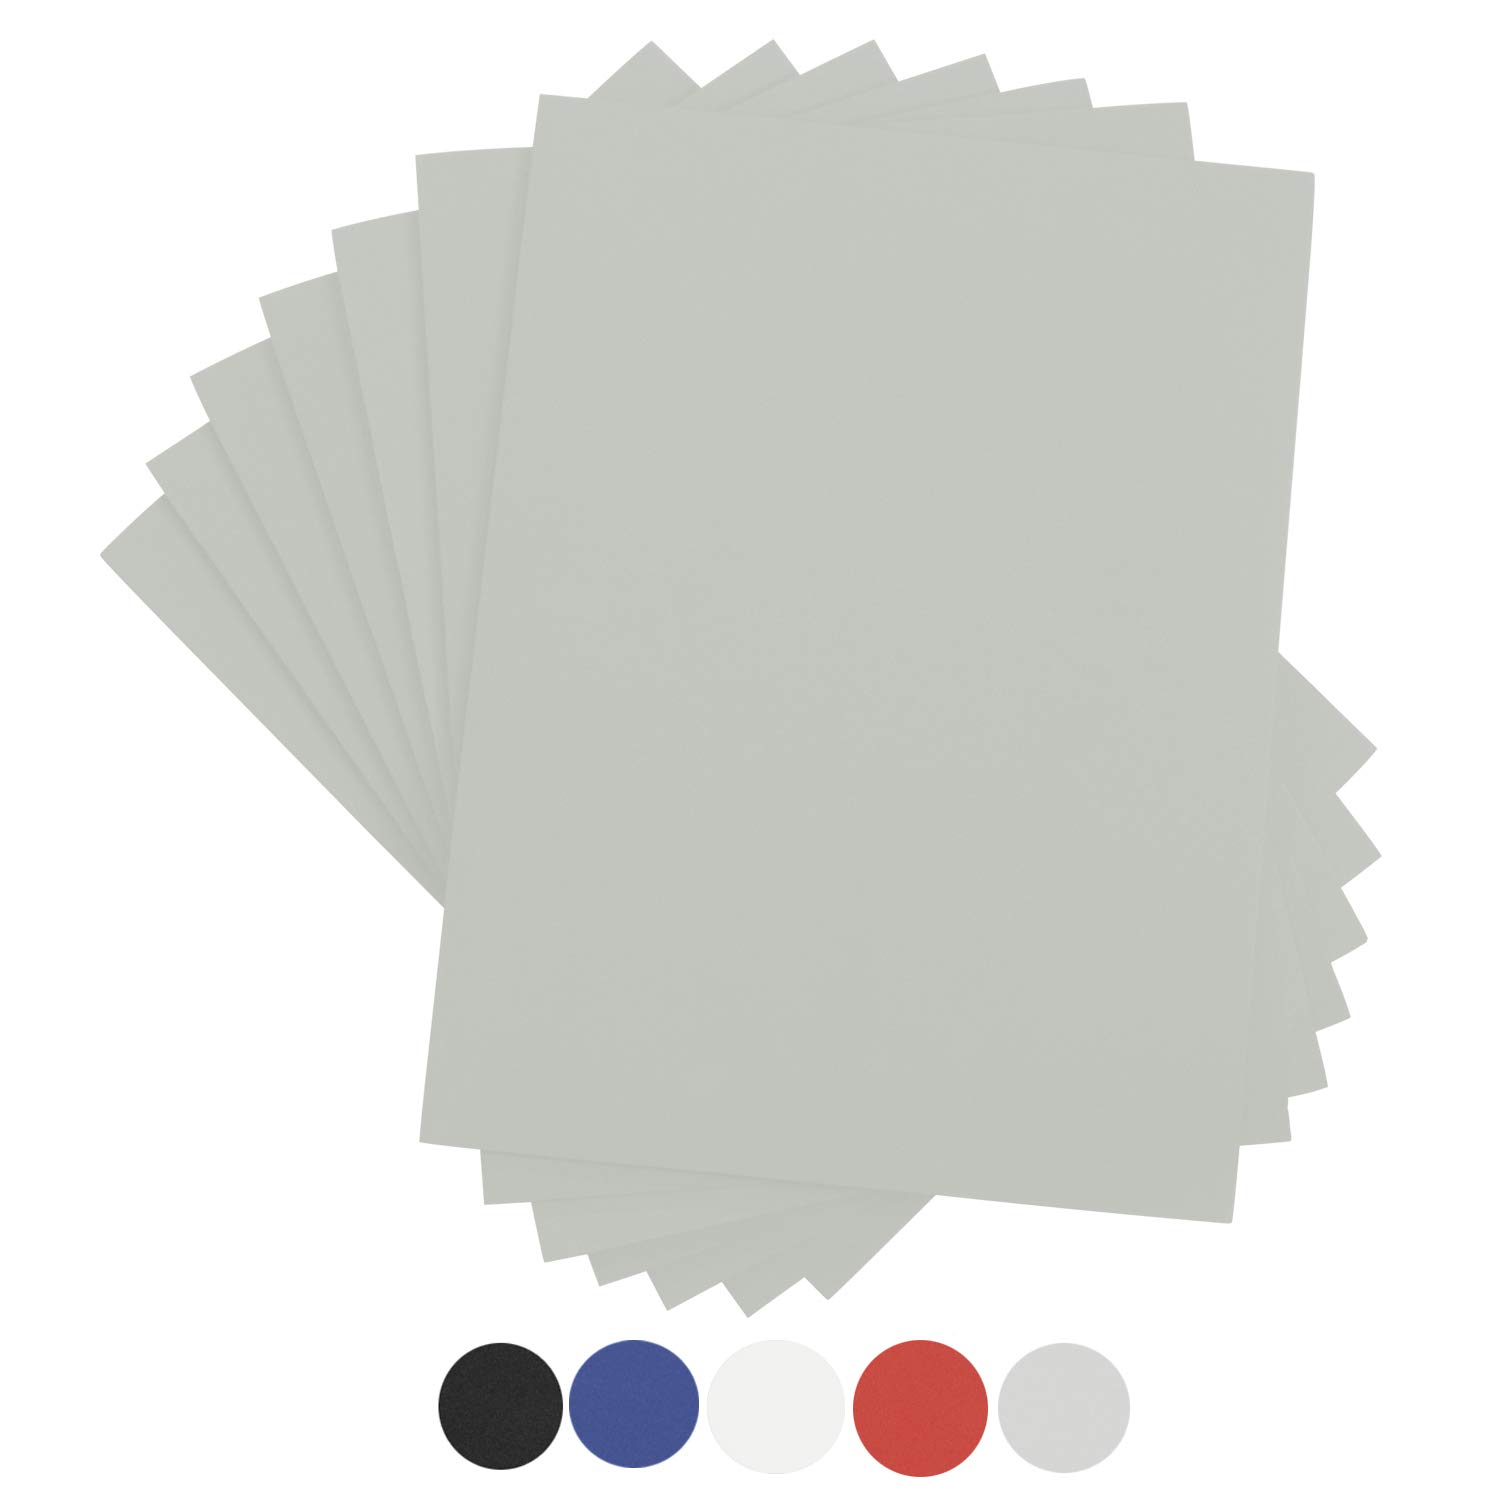 Houseables Crafts Foam Sheets, Art Supplies, 6mm Thick, Grey, 9 X 12 Inch, 10 Pack, Paper Scrapbooking, Cosplay, Crafting Foams Paper, Styrofoam, Foamie, for Kids, Boy Scouts, Halloween, Cushion